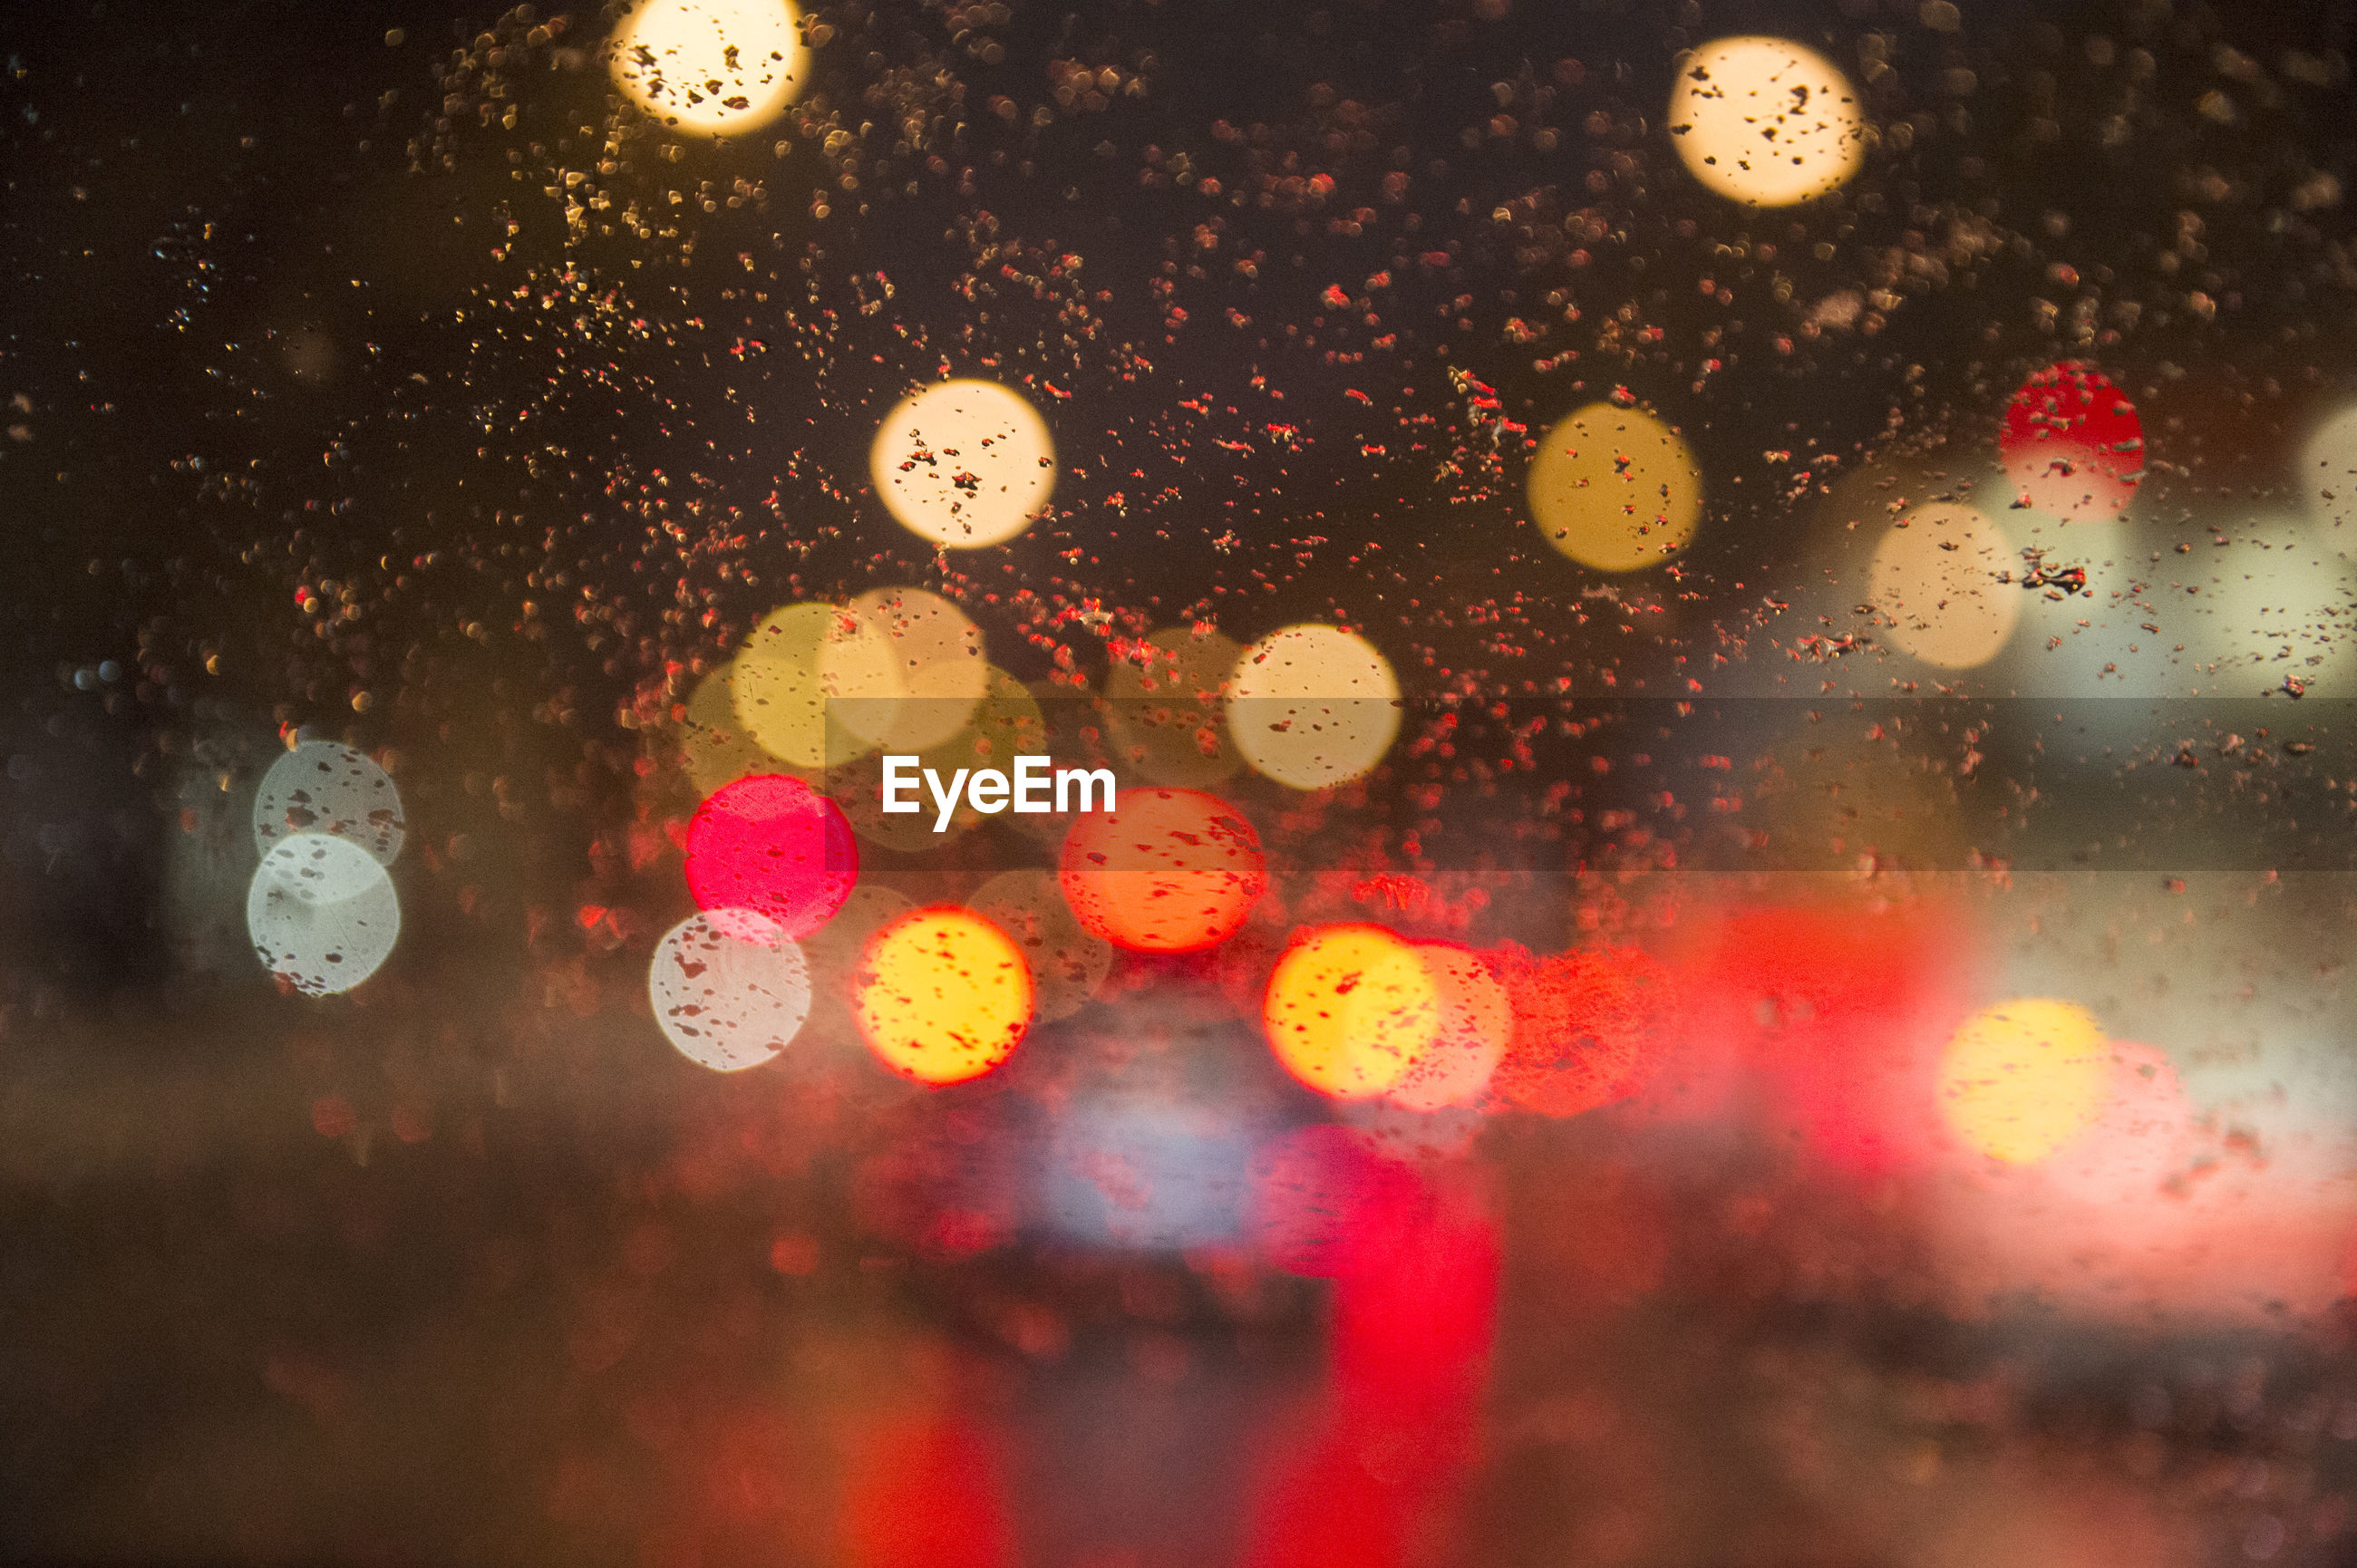 Close-up of lights seen through wet glass window in rainy season